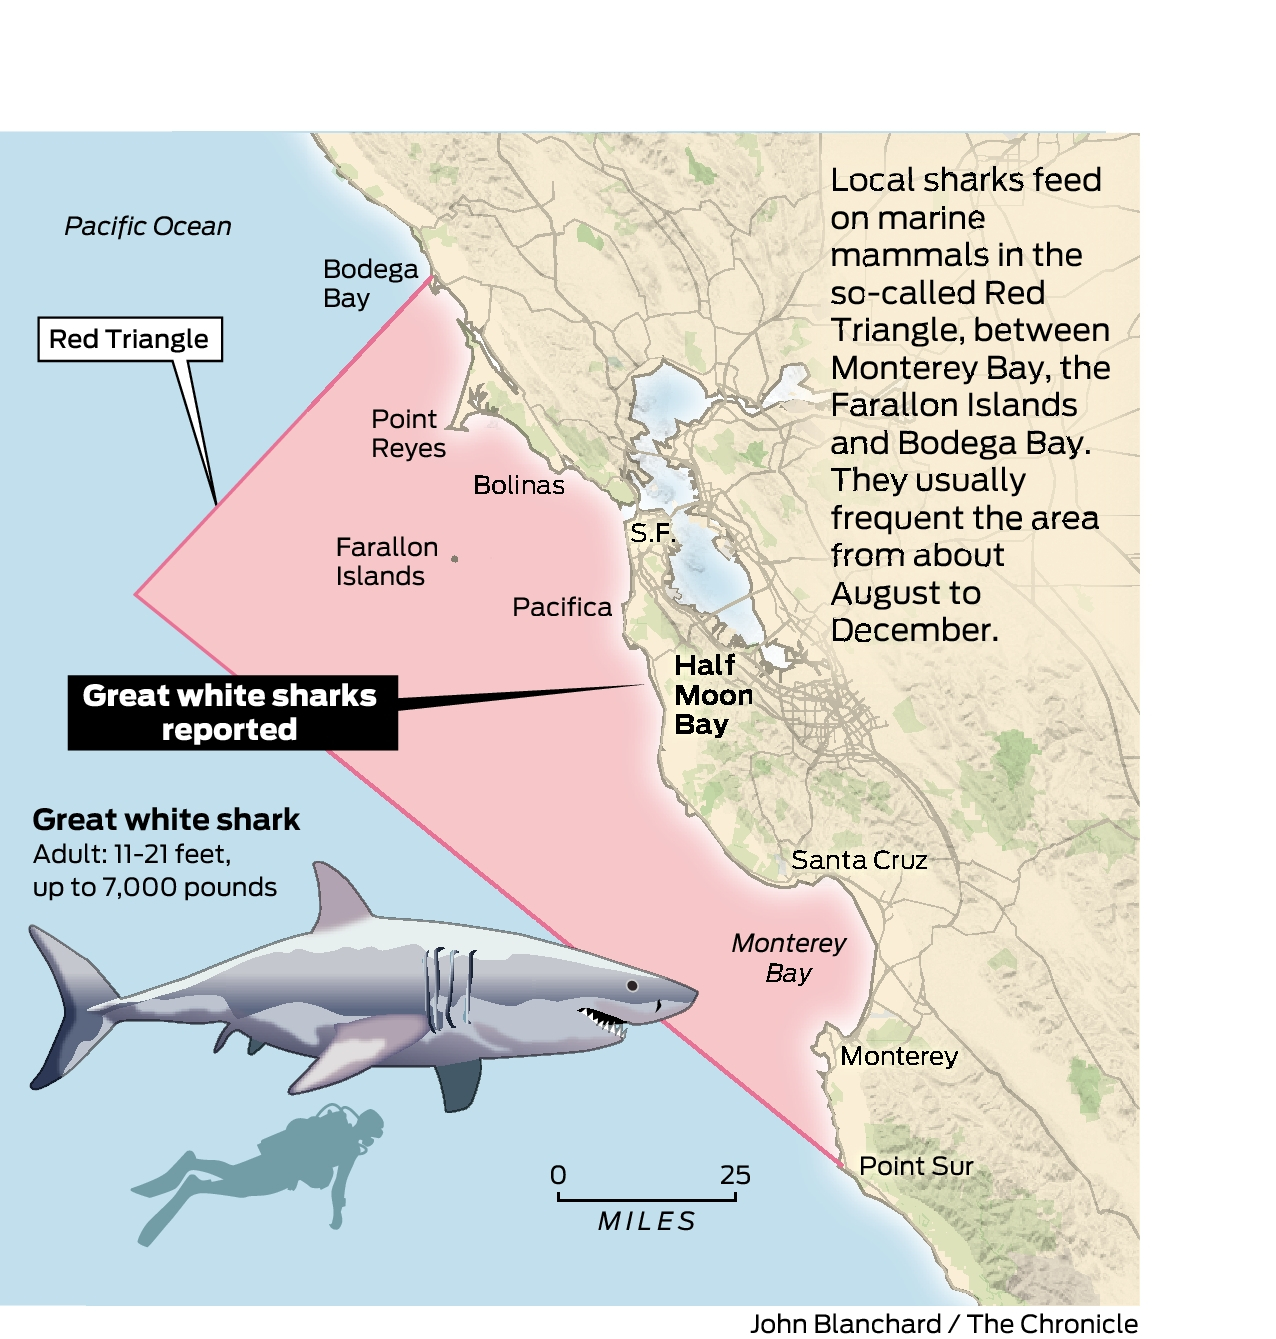 Great white sharks spotted near Half Moon Bay - SFChronicle com